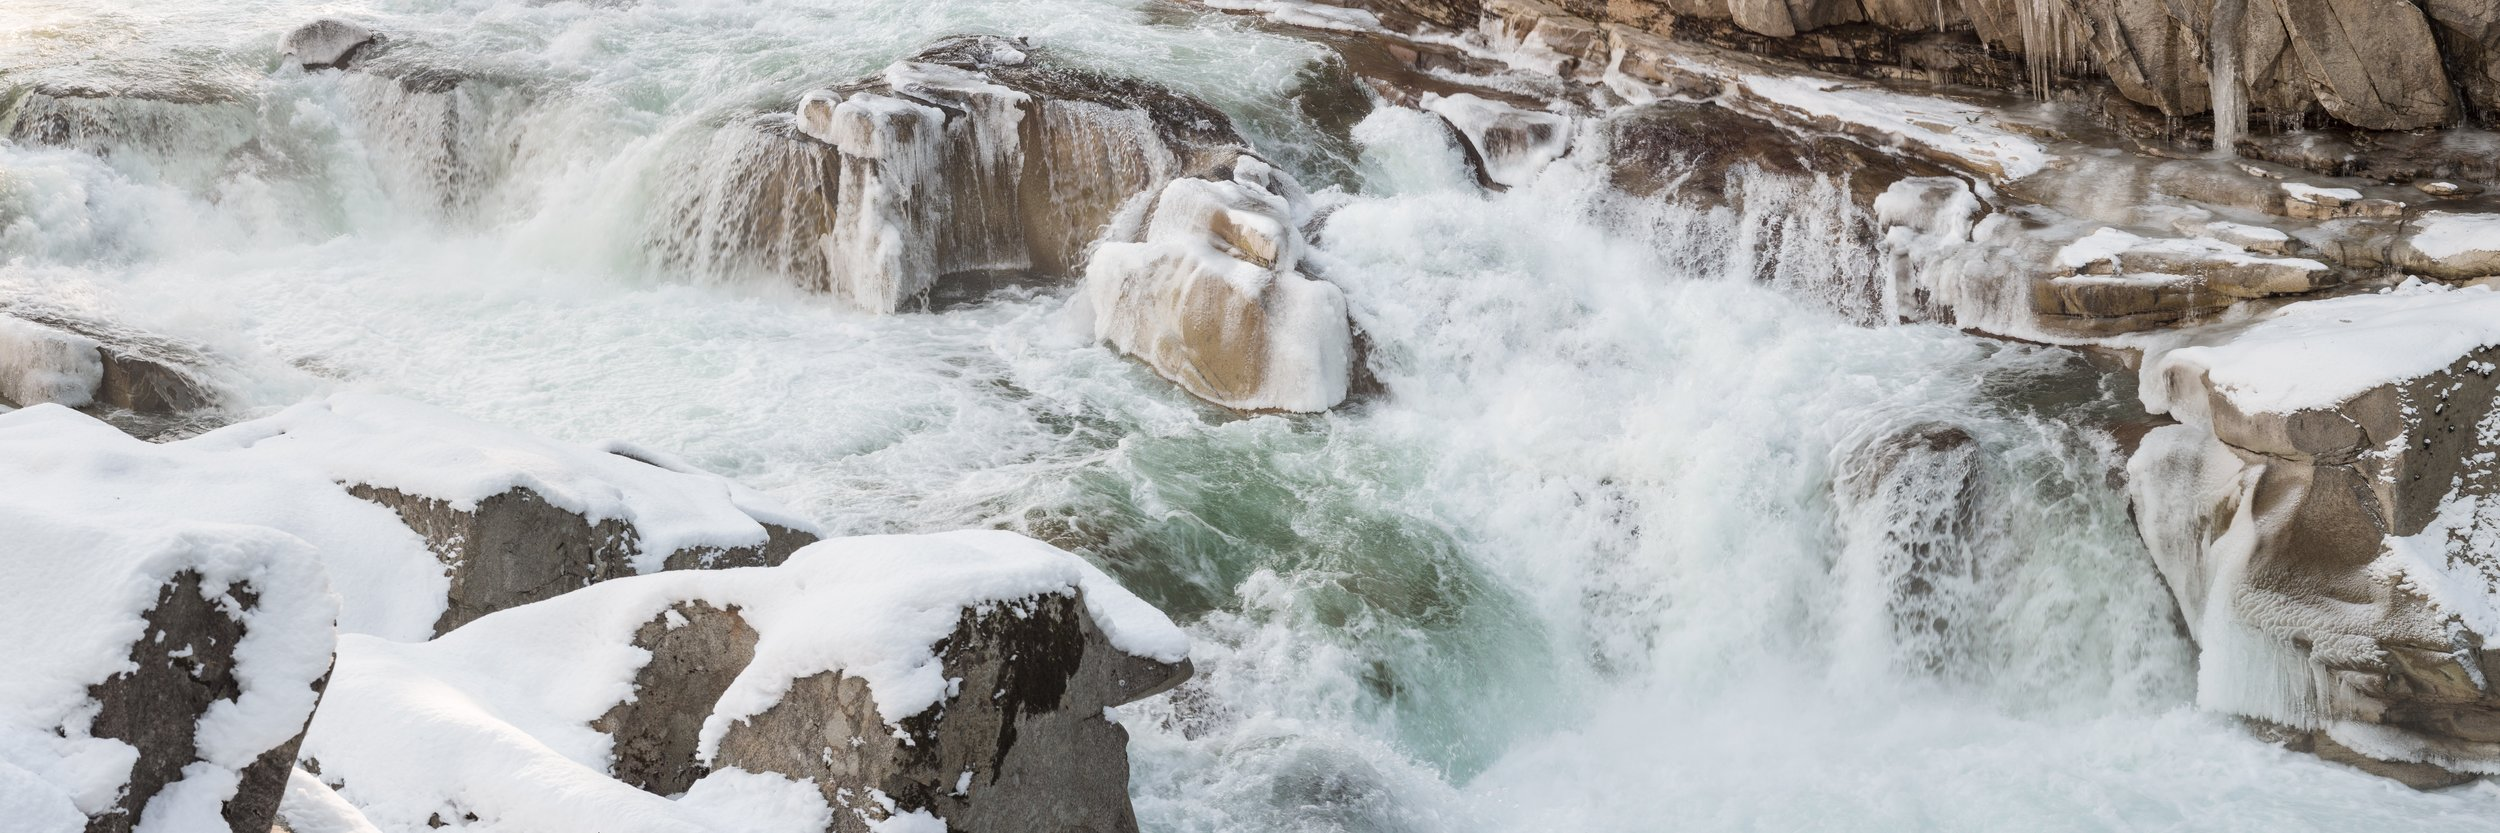 Snow and Ice on Raging River Waterfall Panorama at Eagle Falls, Washington